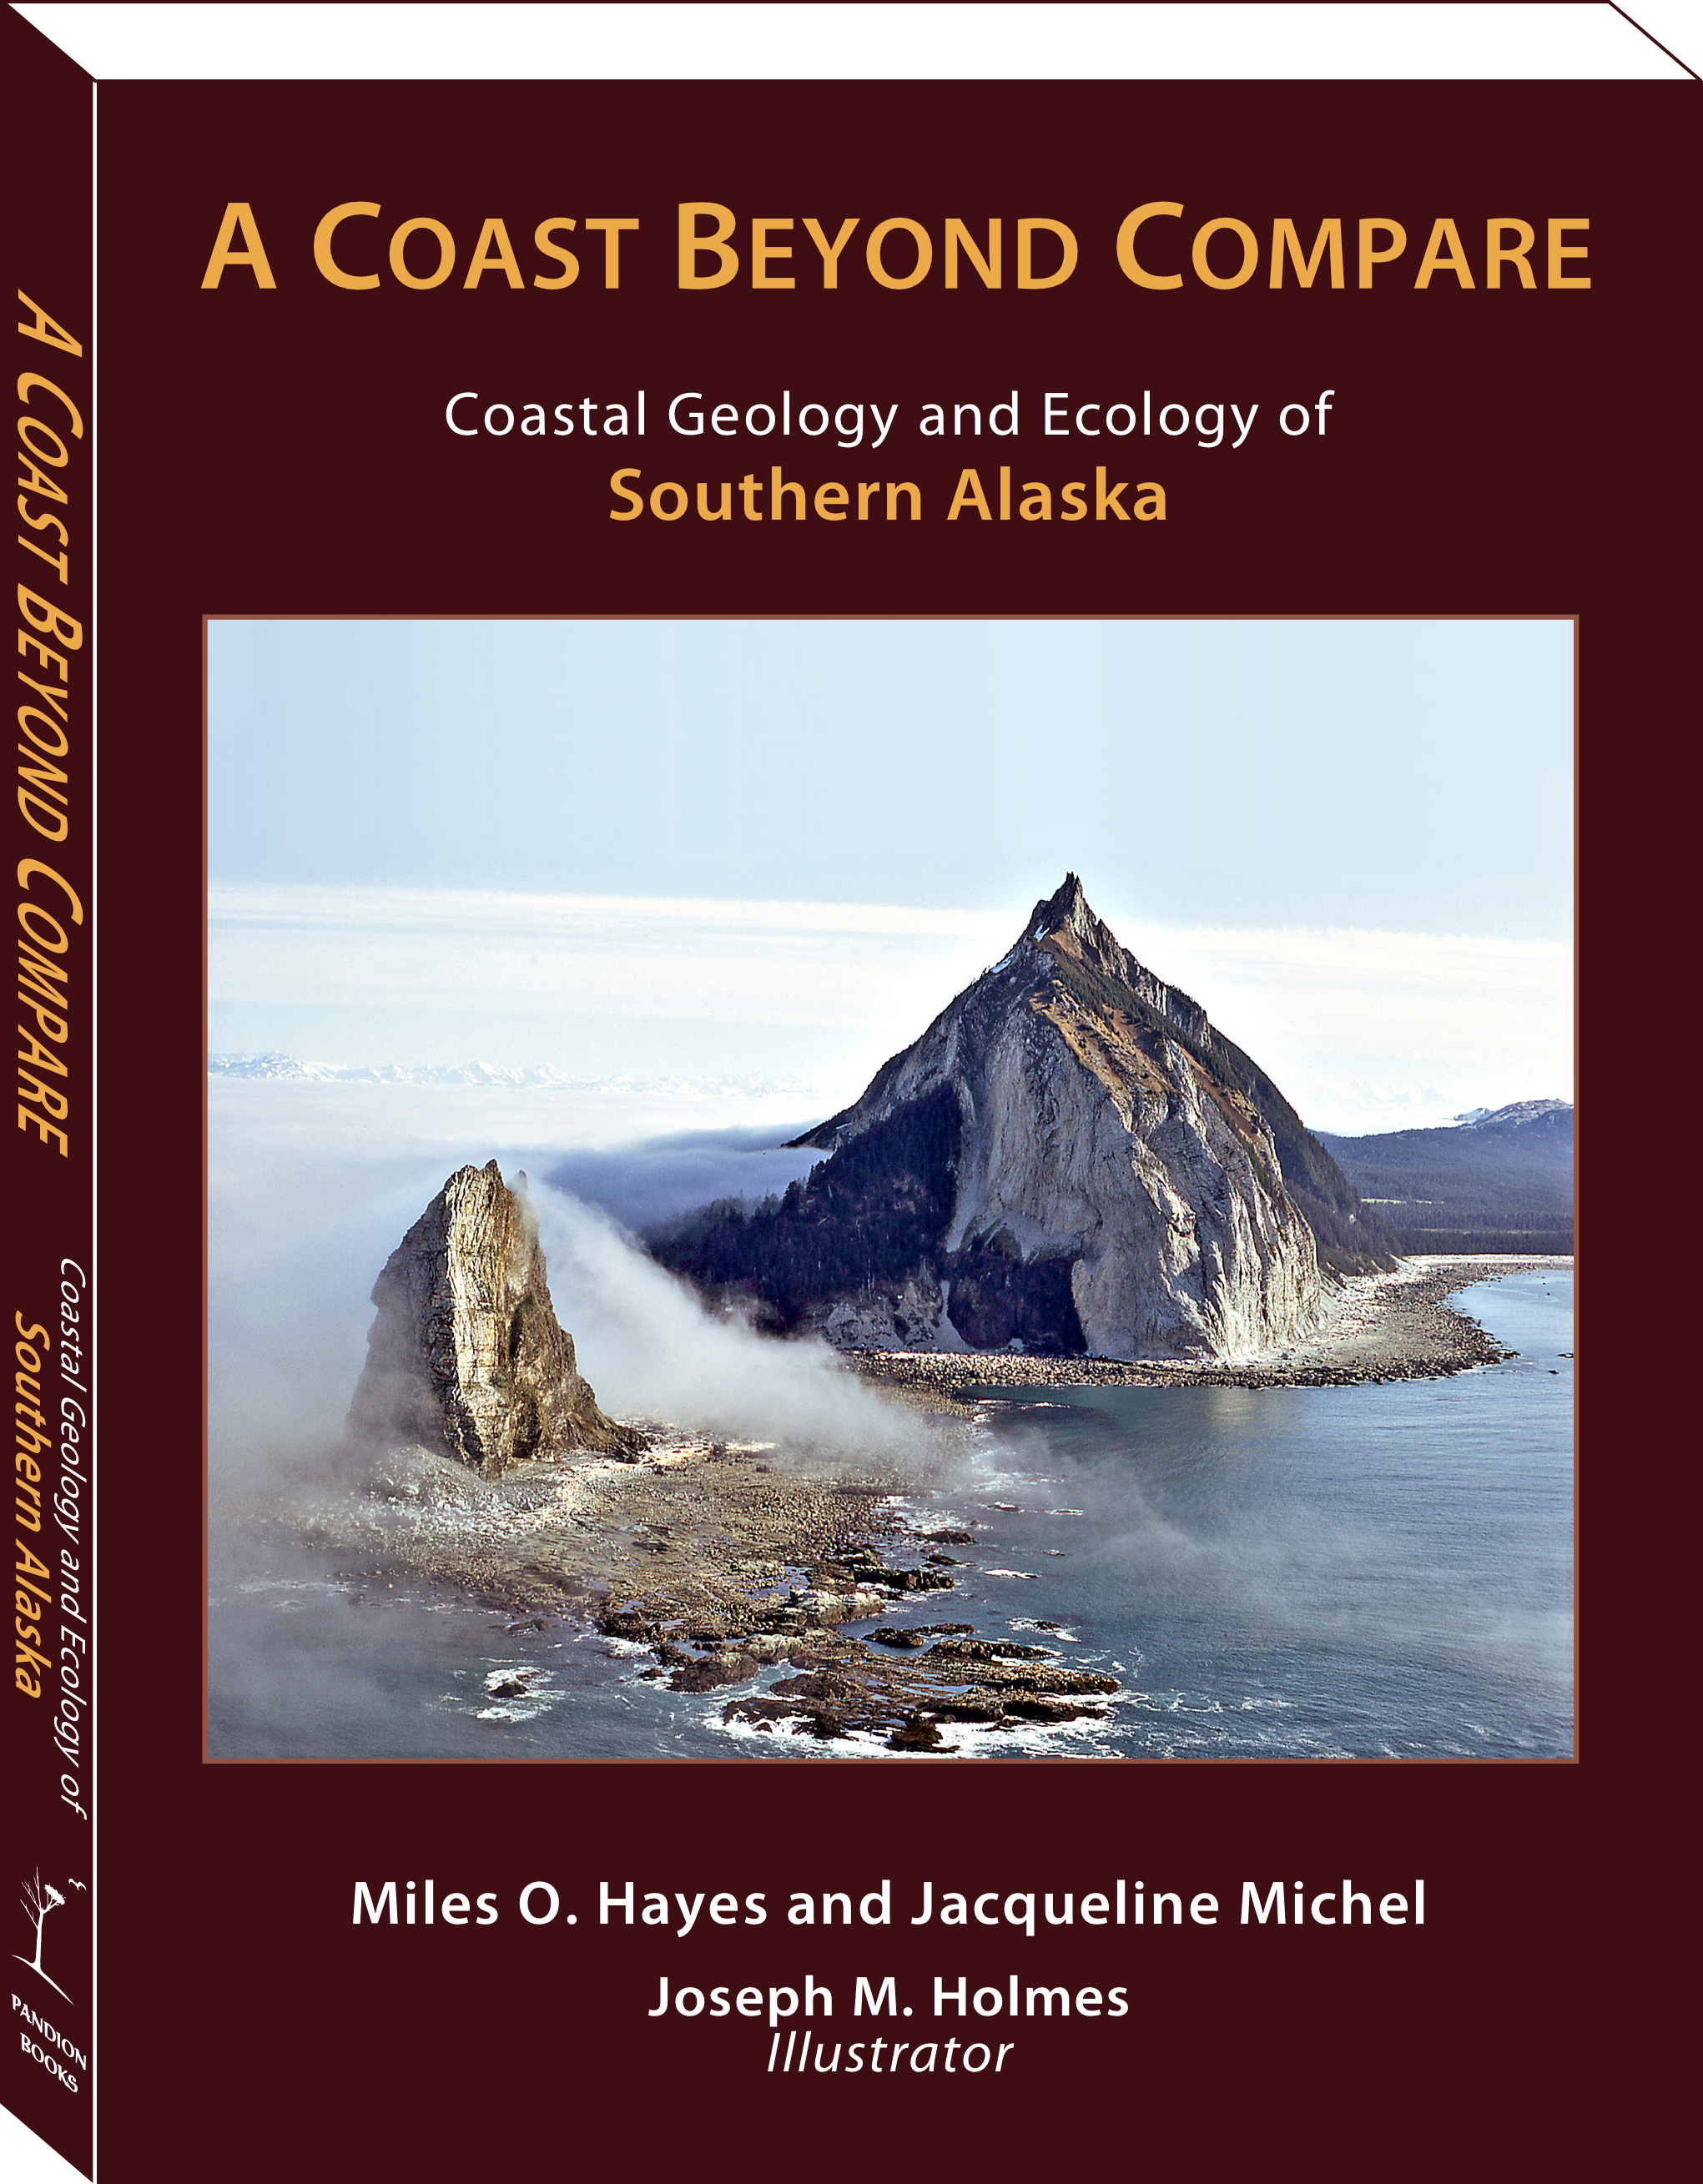 Southern AK Coast - PowerPoint Figures w/captions (download here)